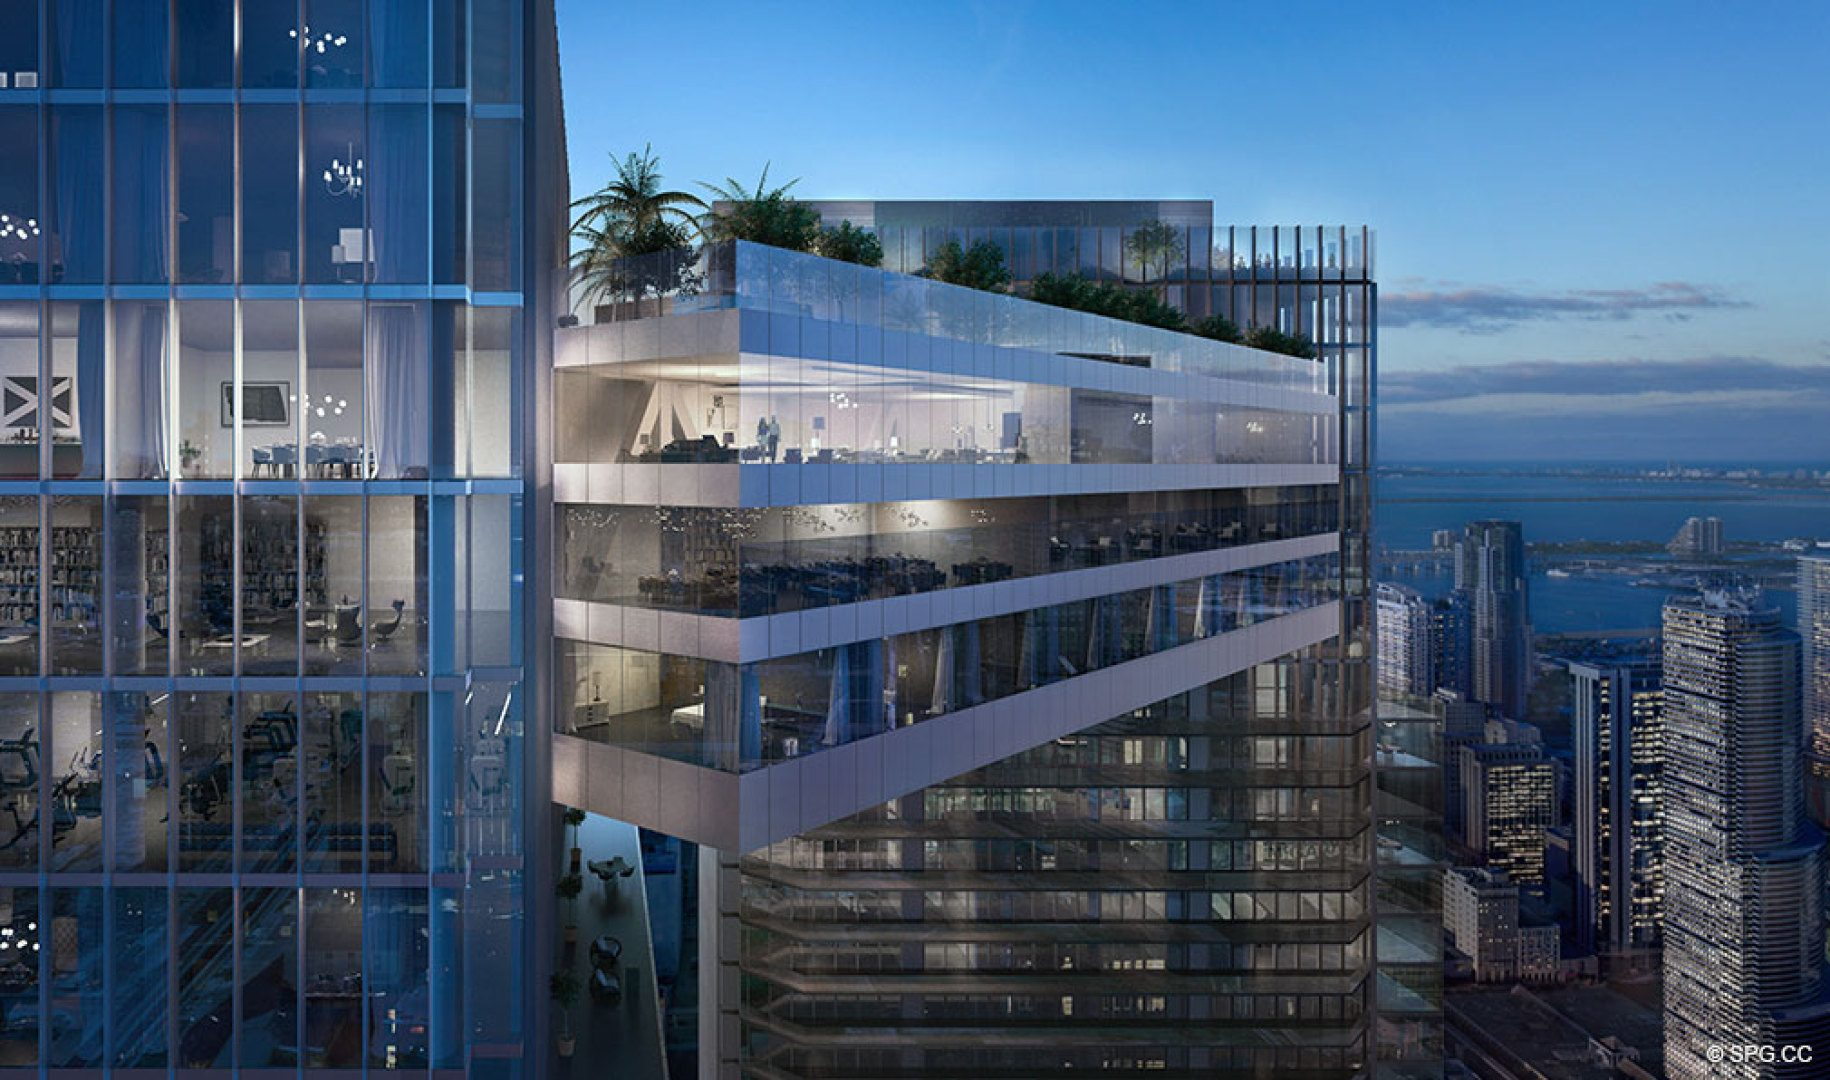 The majestic Sky Terrace at One River Point, Luxury Waterfront Condos in Miami, Florida 33130